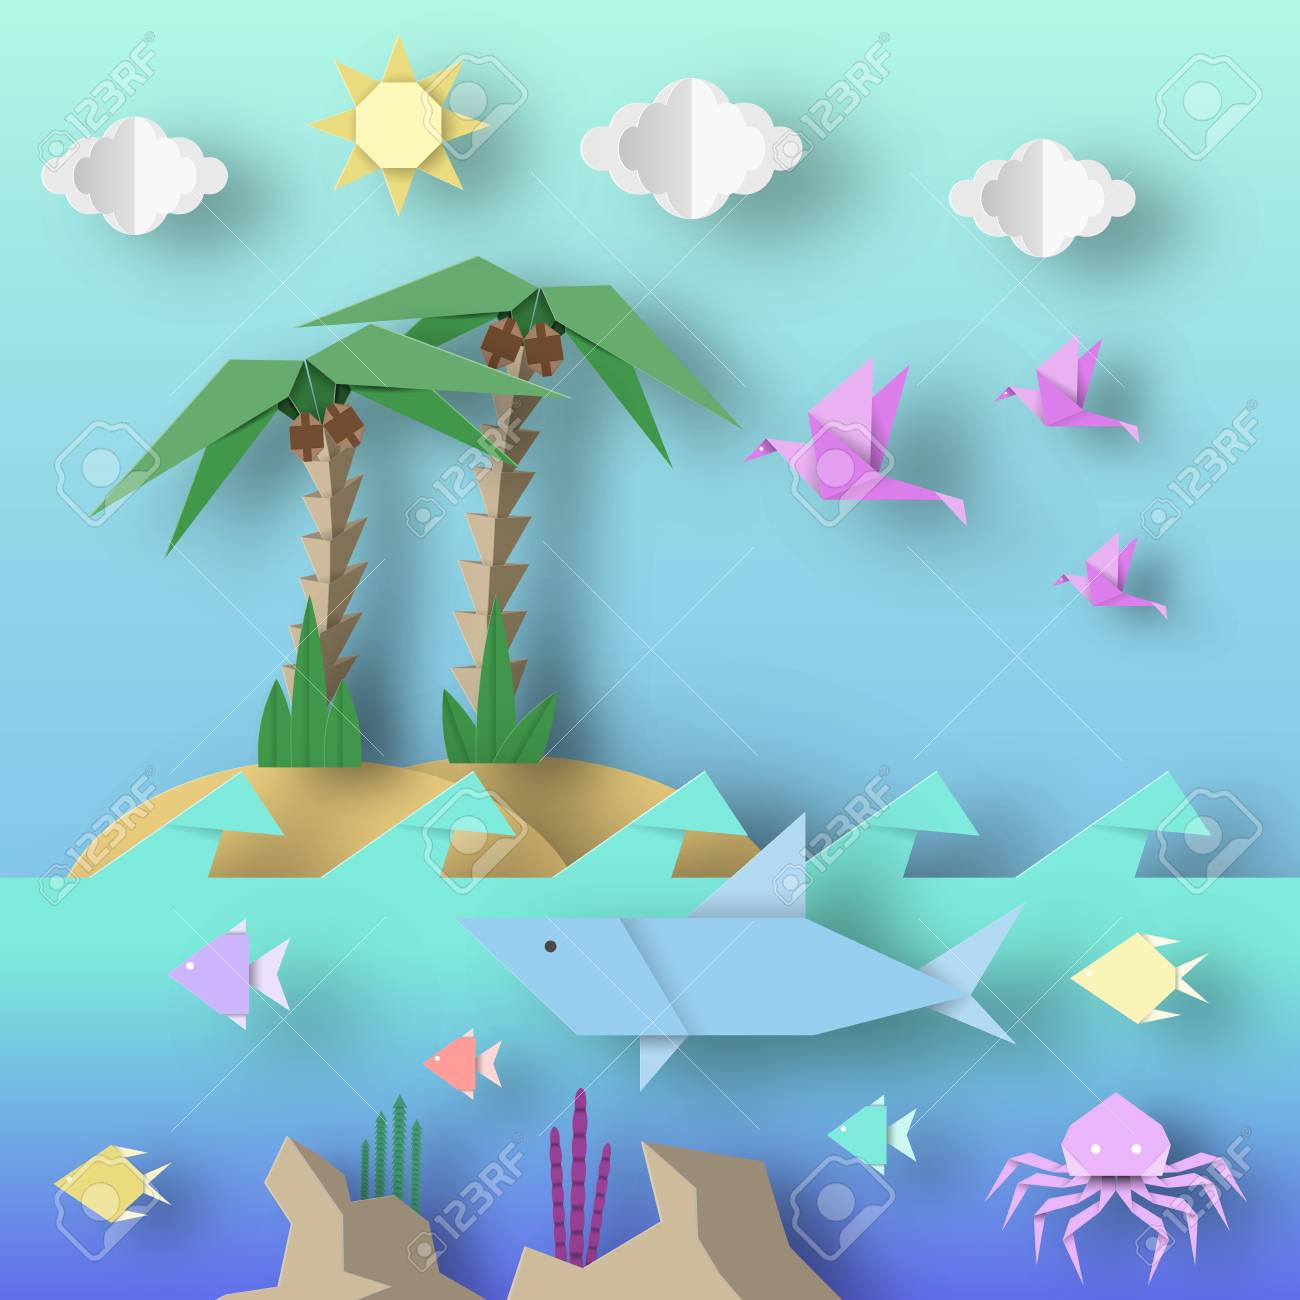 Origami Style Crafted Out Of Paper With Cut Shark Palm Birds Fish